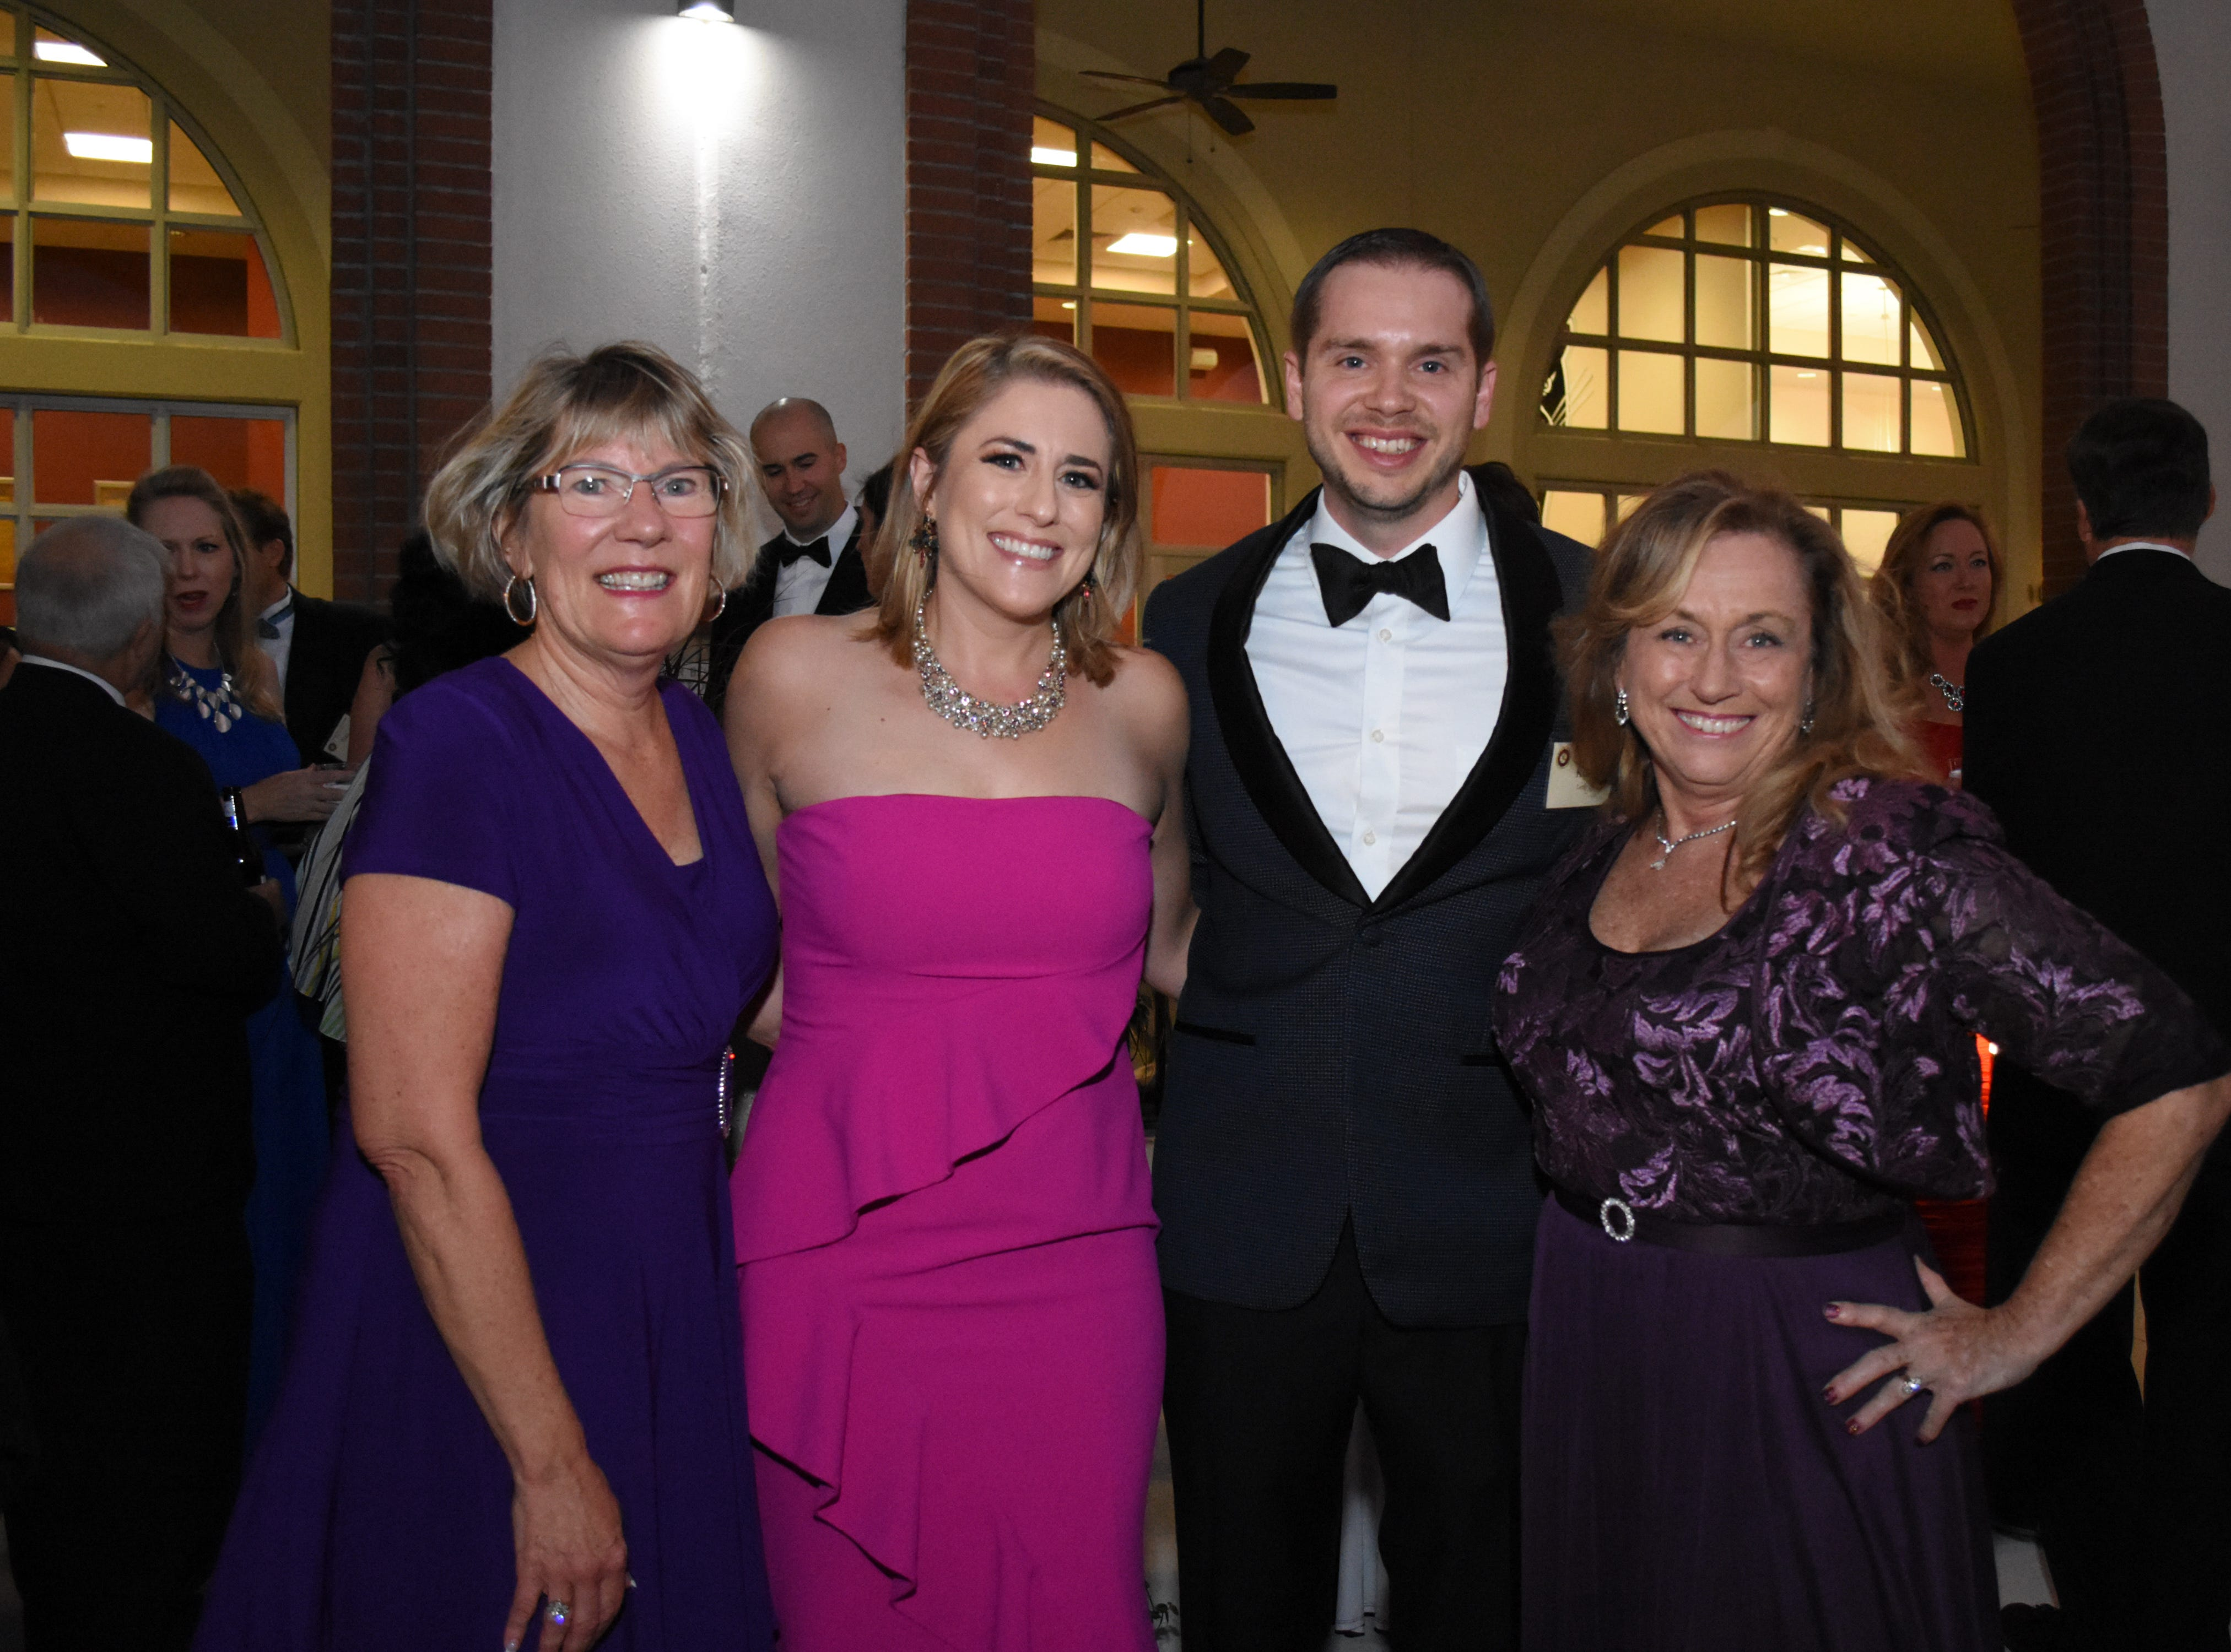 Members of the College of Business pose for a photo at Florida Tech's 60th Anniversary Homecoming Gala Oct. 13, 2018, at the Clemente Center.